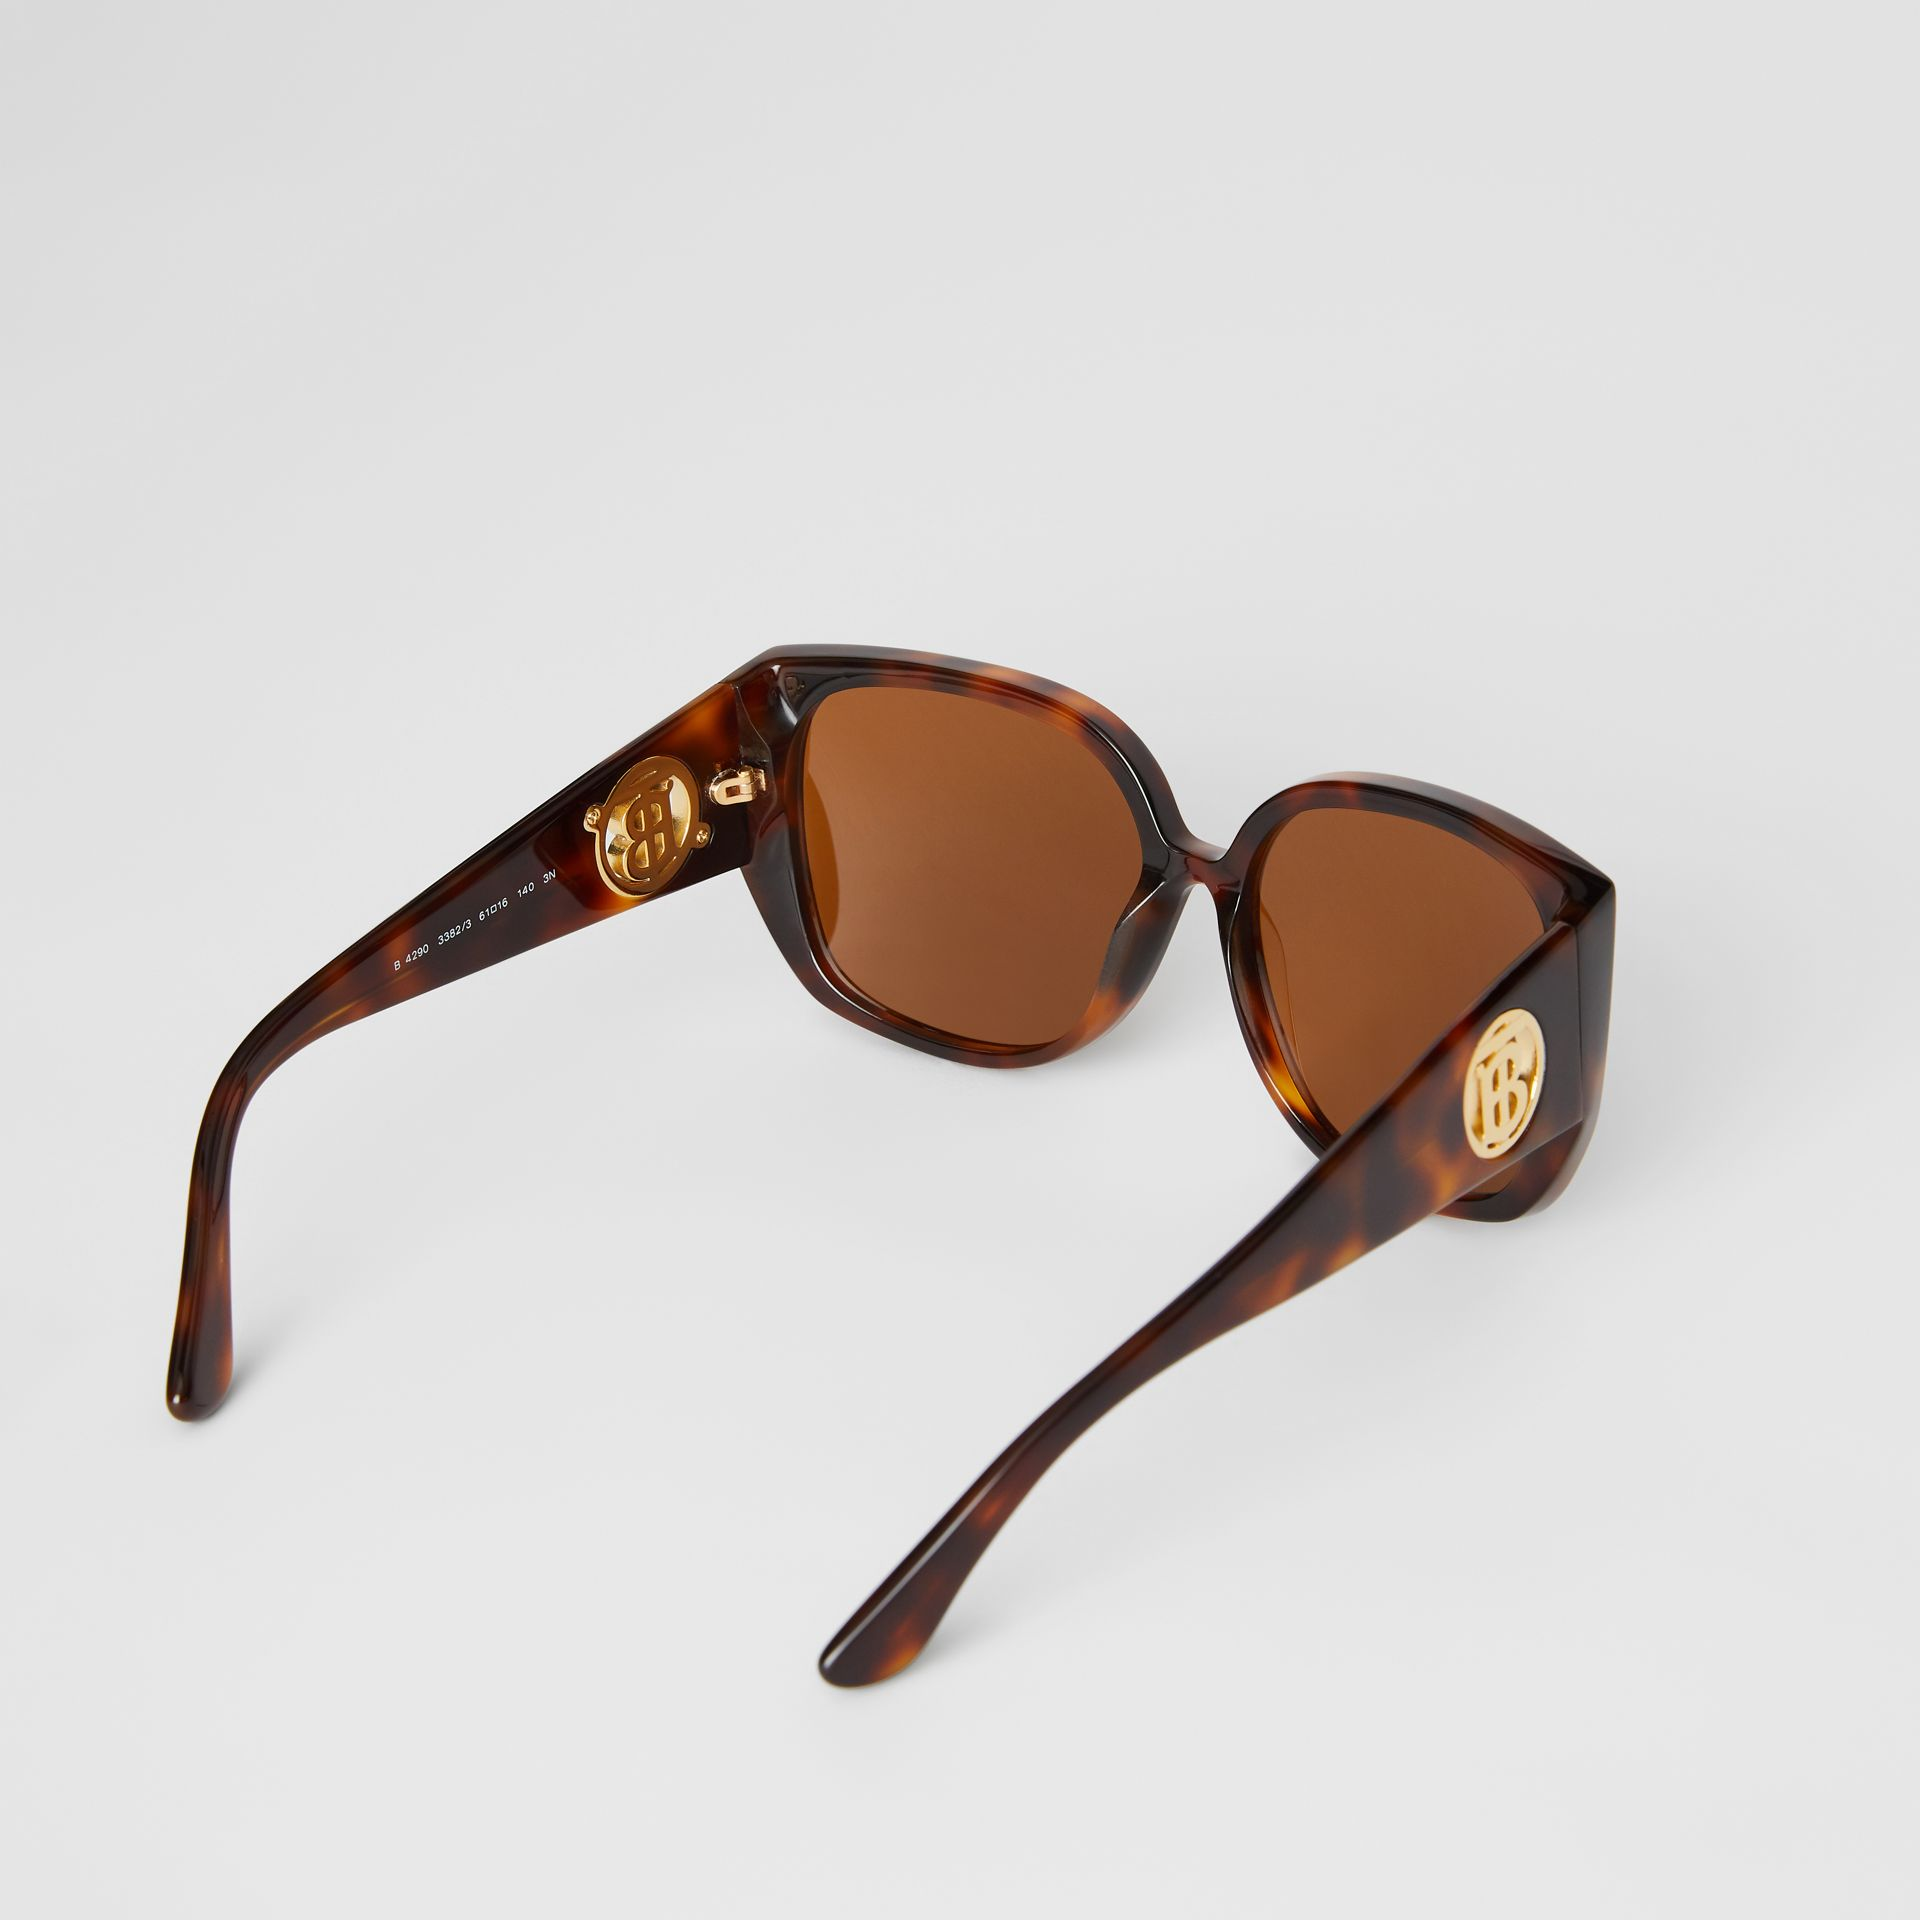 Monogram Detail Round Frame Sunglasses in Tortoise Shell - Women | Burberry Australia - gallery image 3